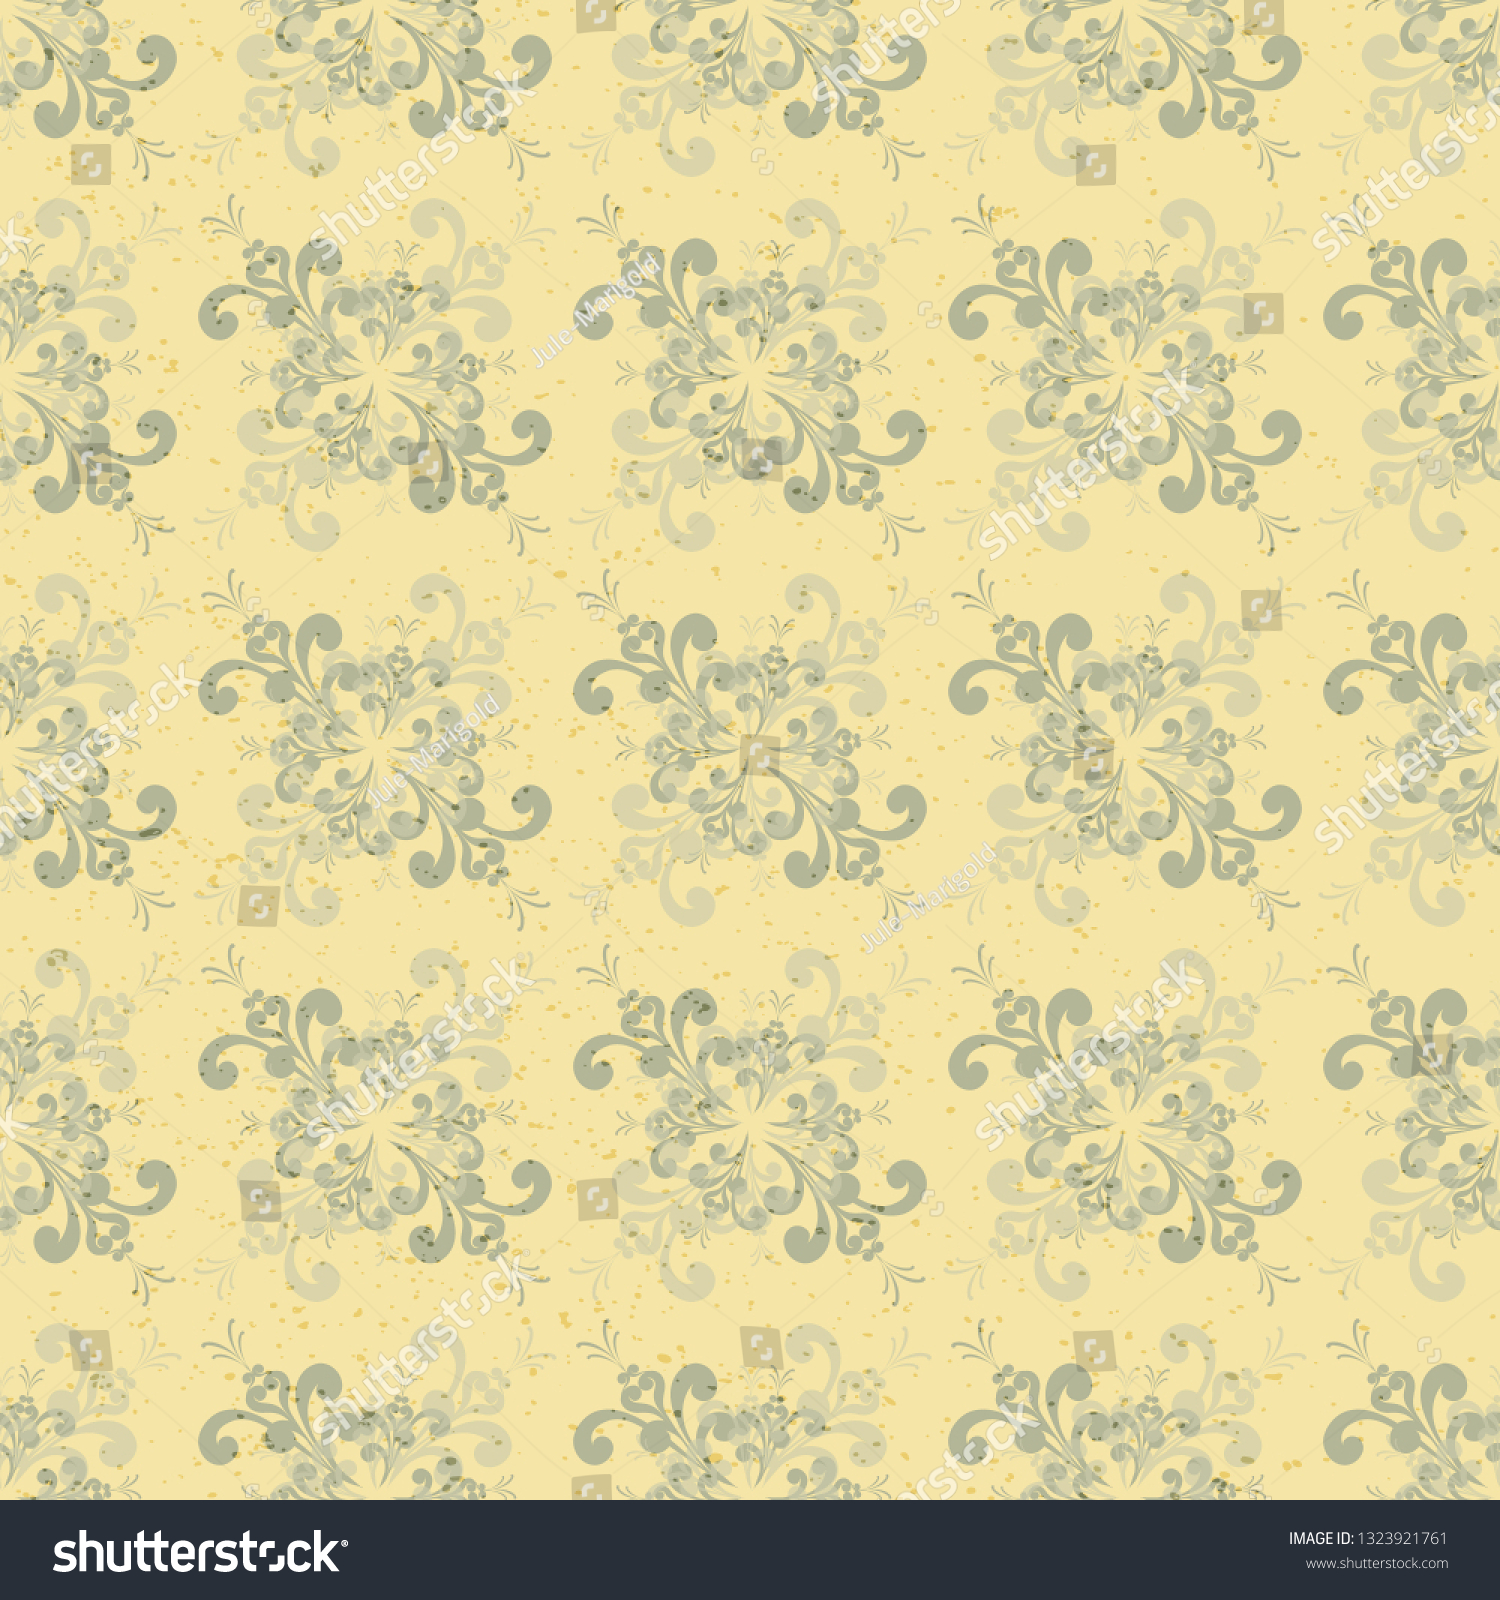 Seamless Floral Yellowgray Pattern Texture Made Vintage